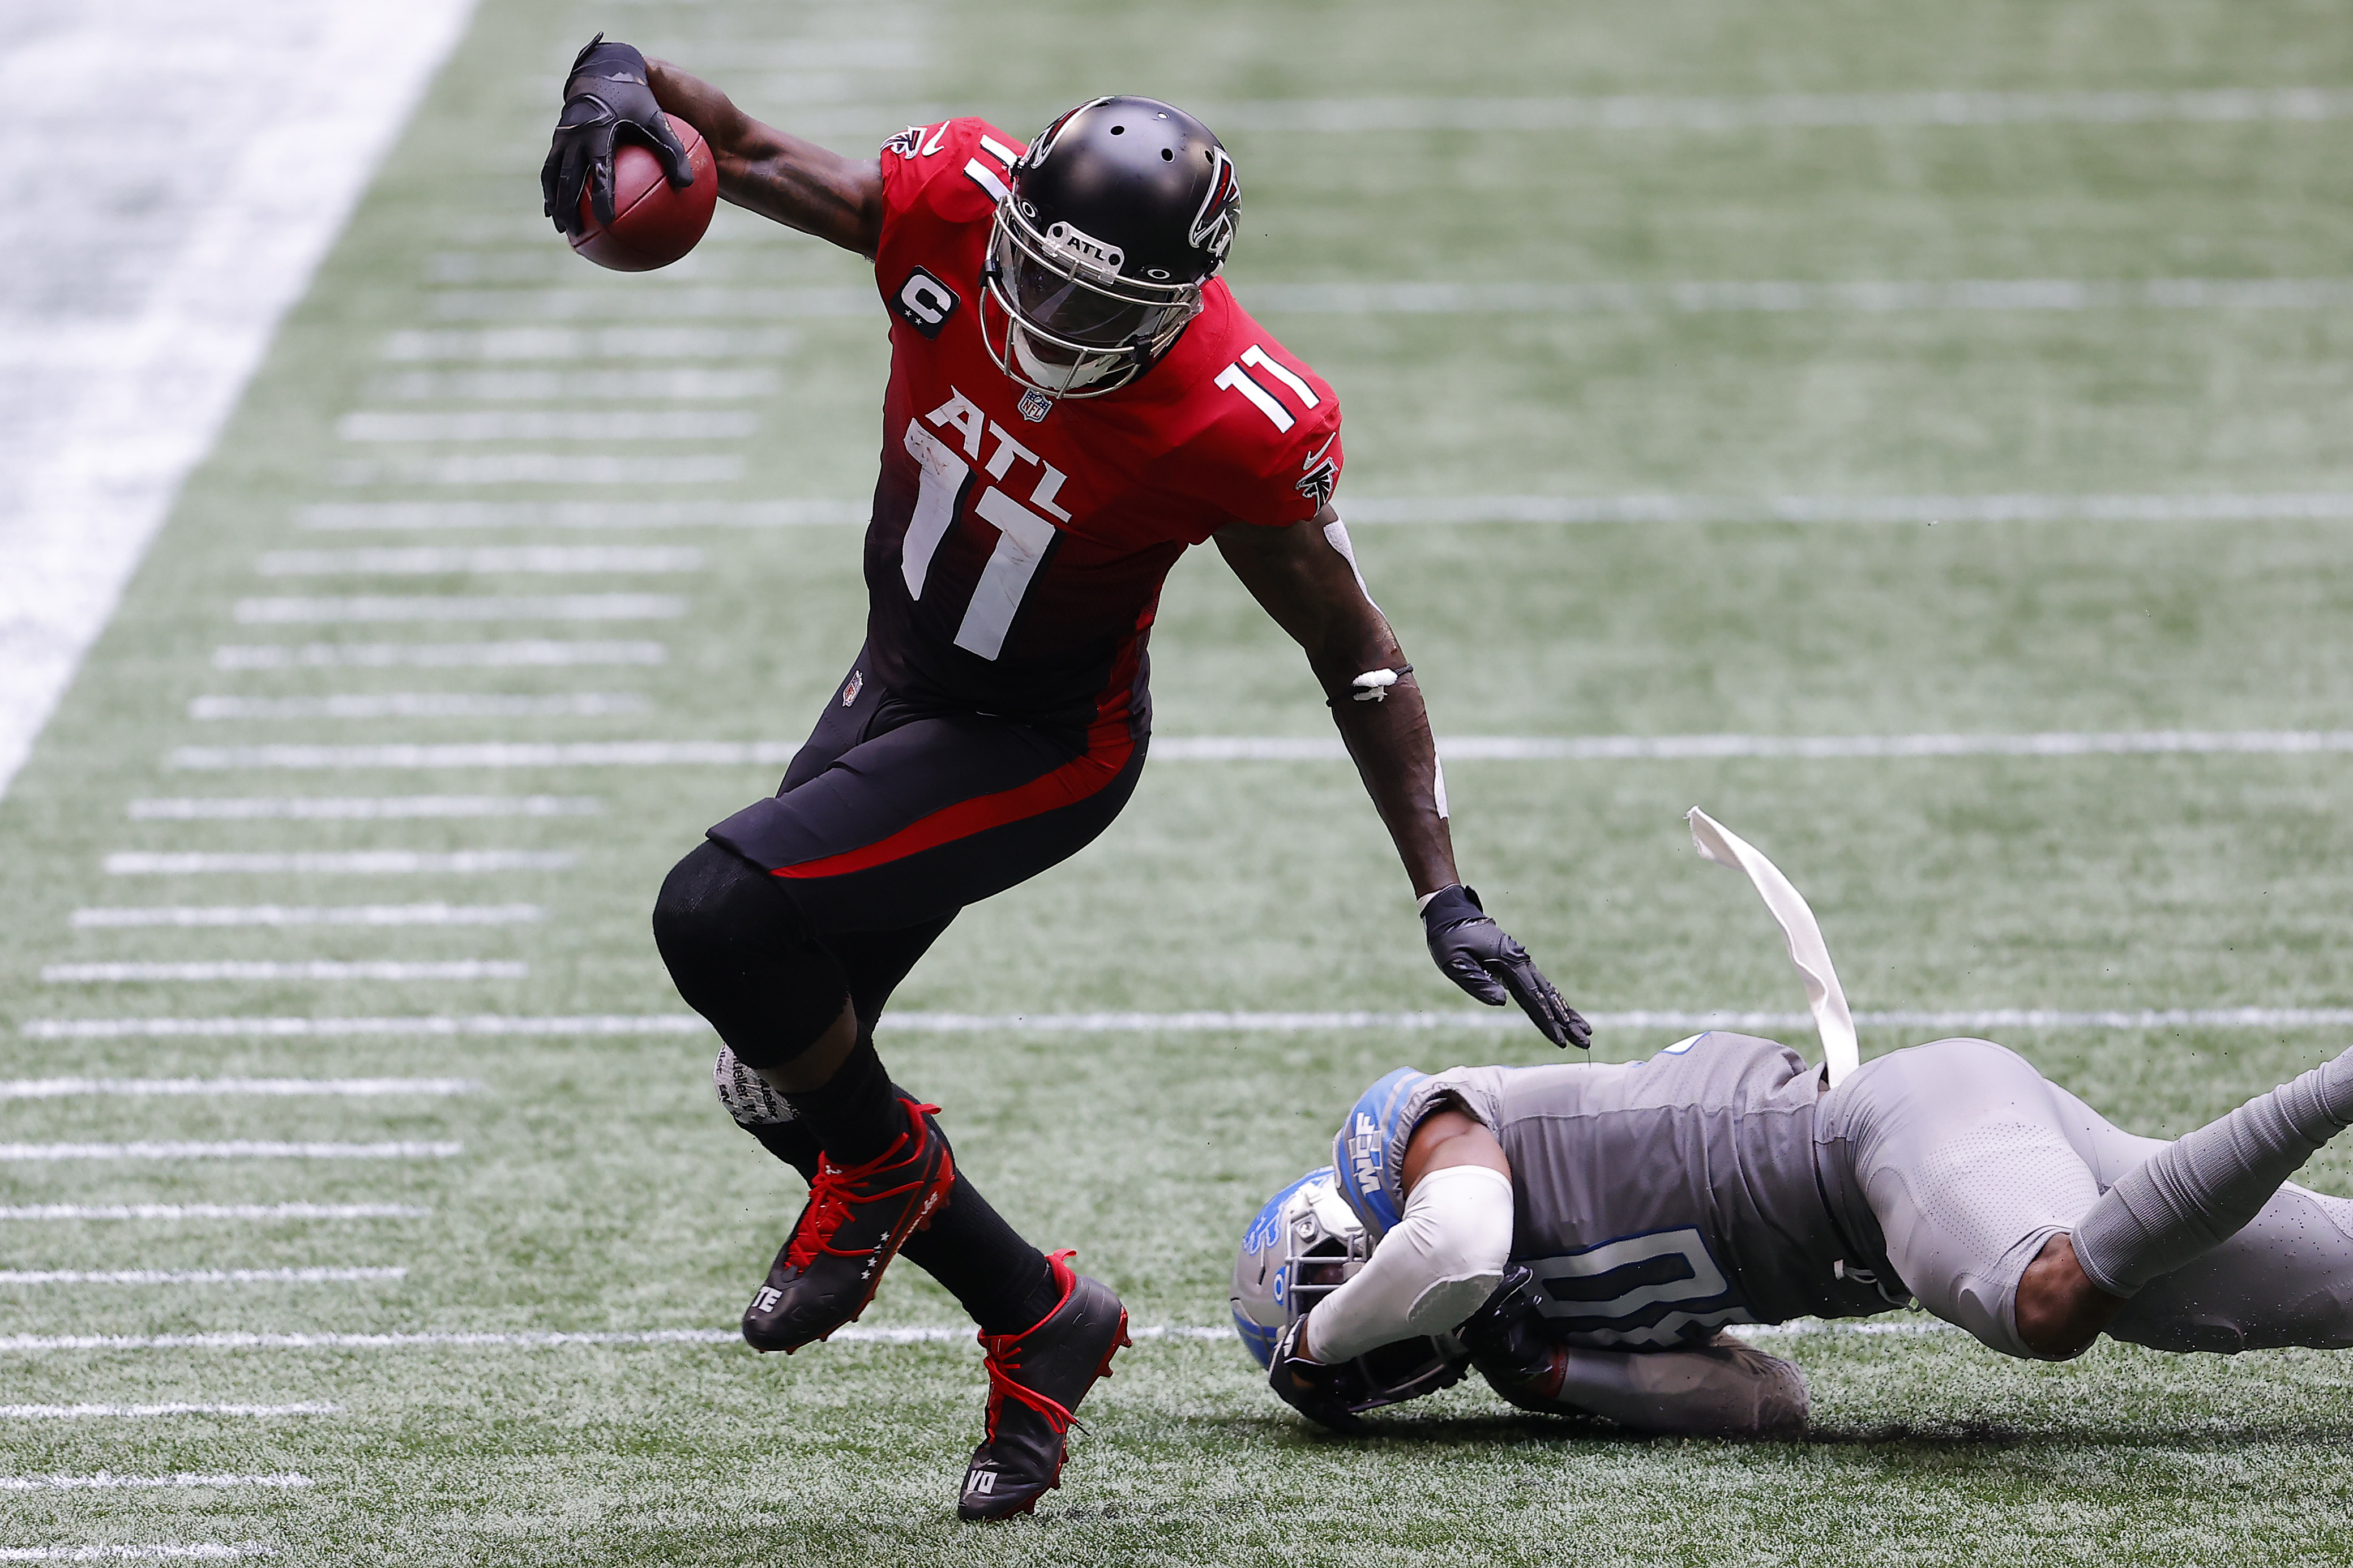 The Falcons' Julio Jones avoids a defender